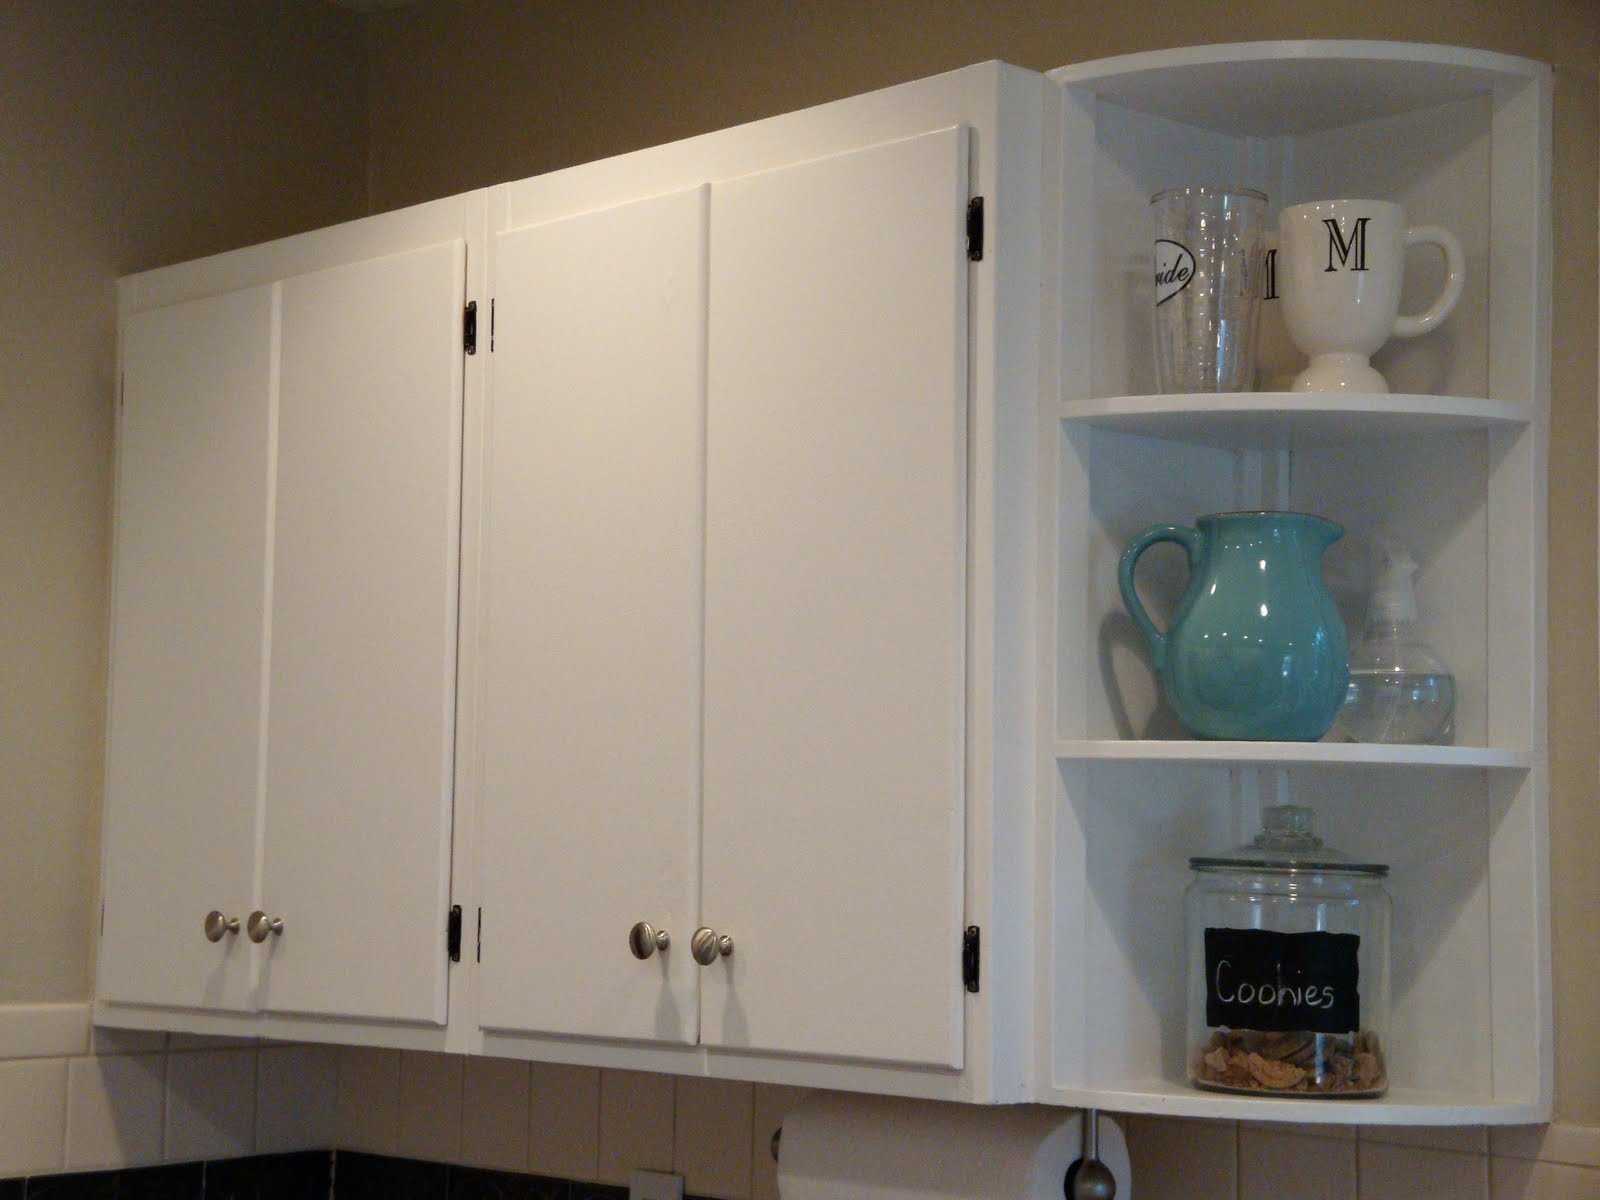 Ex Diskitchen Cabinets Discount Kitchen Cabinets To Improve Your Kitchens Look